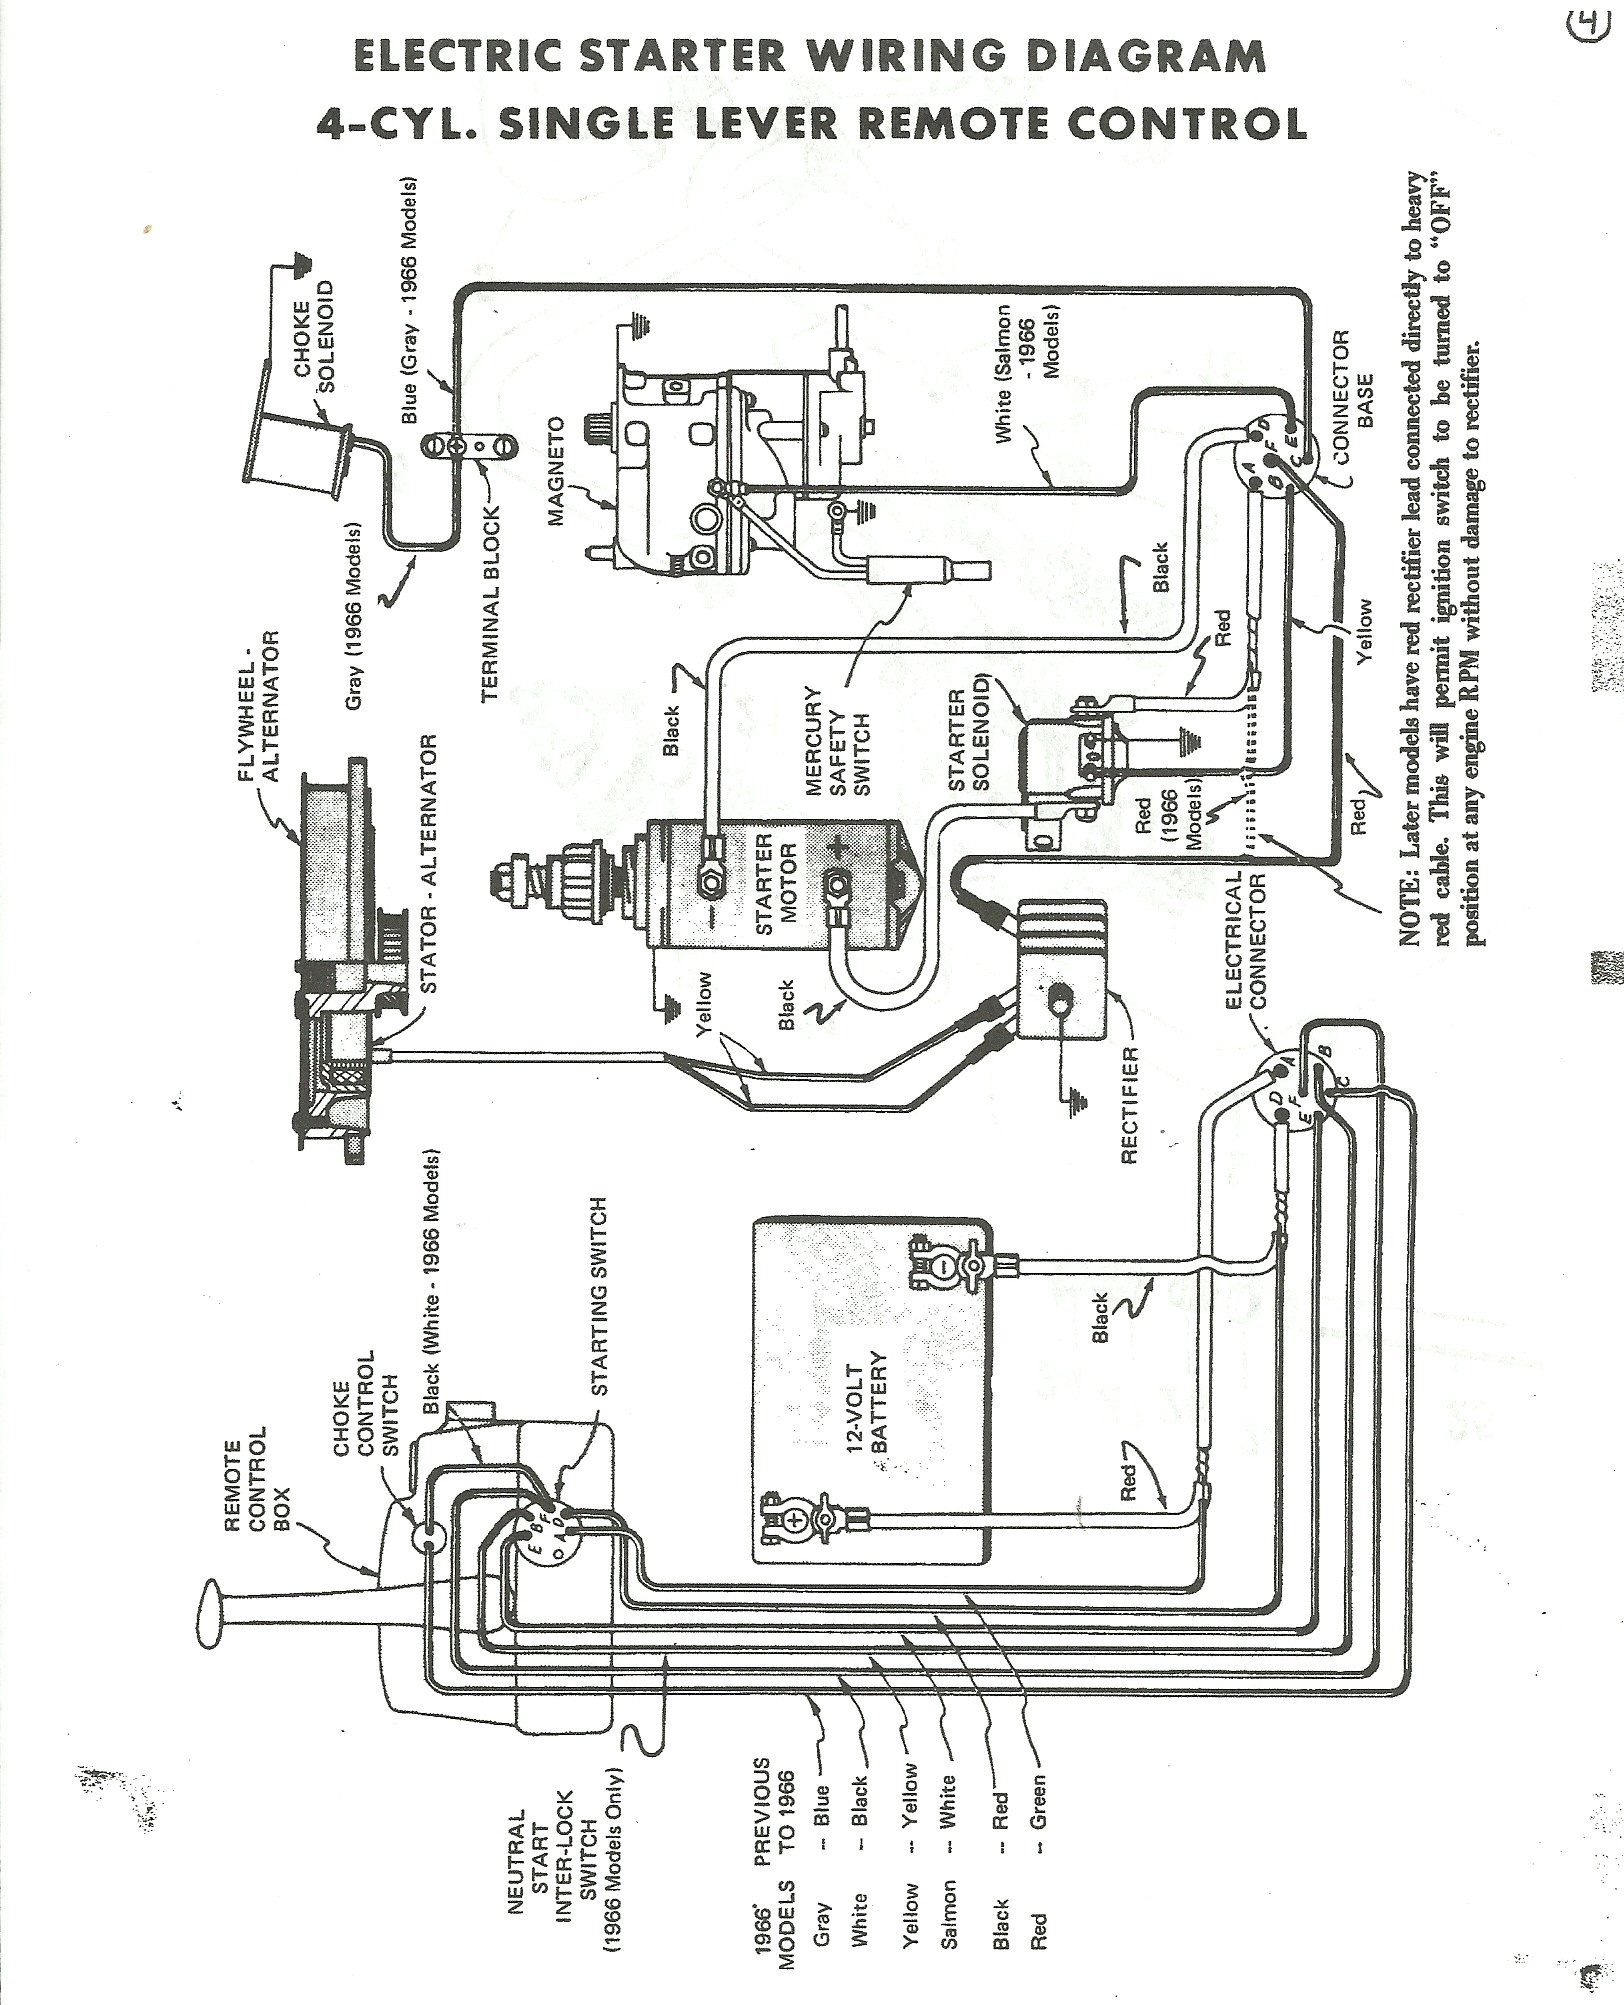 Inboard Outboard Engine Diagram I Have A 1965 Mercury 500 50 Hp Electric Start Using Boat All Of Inboard Outboard Engine Diagram